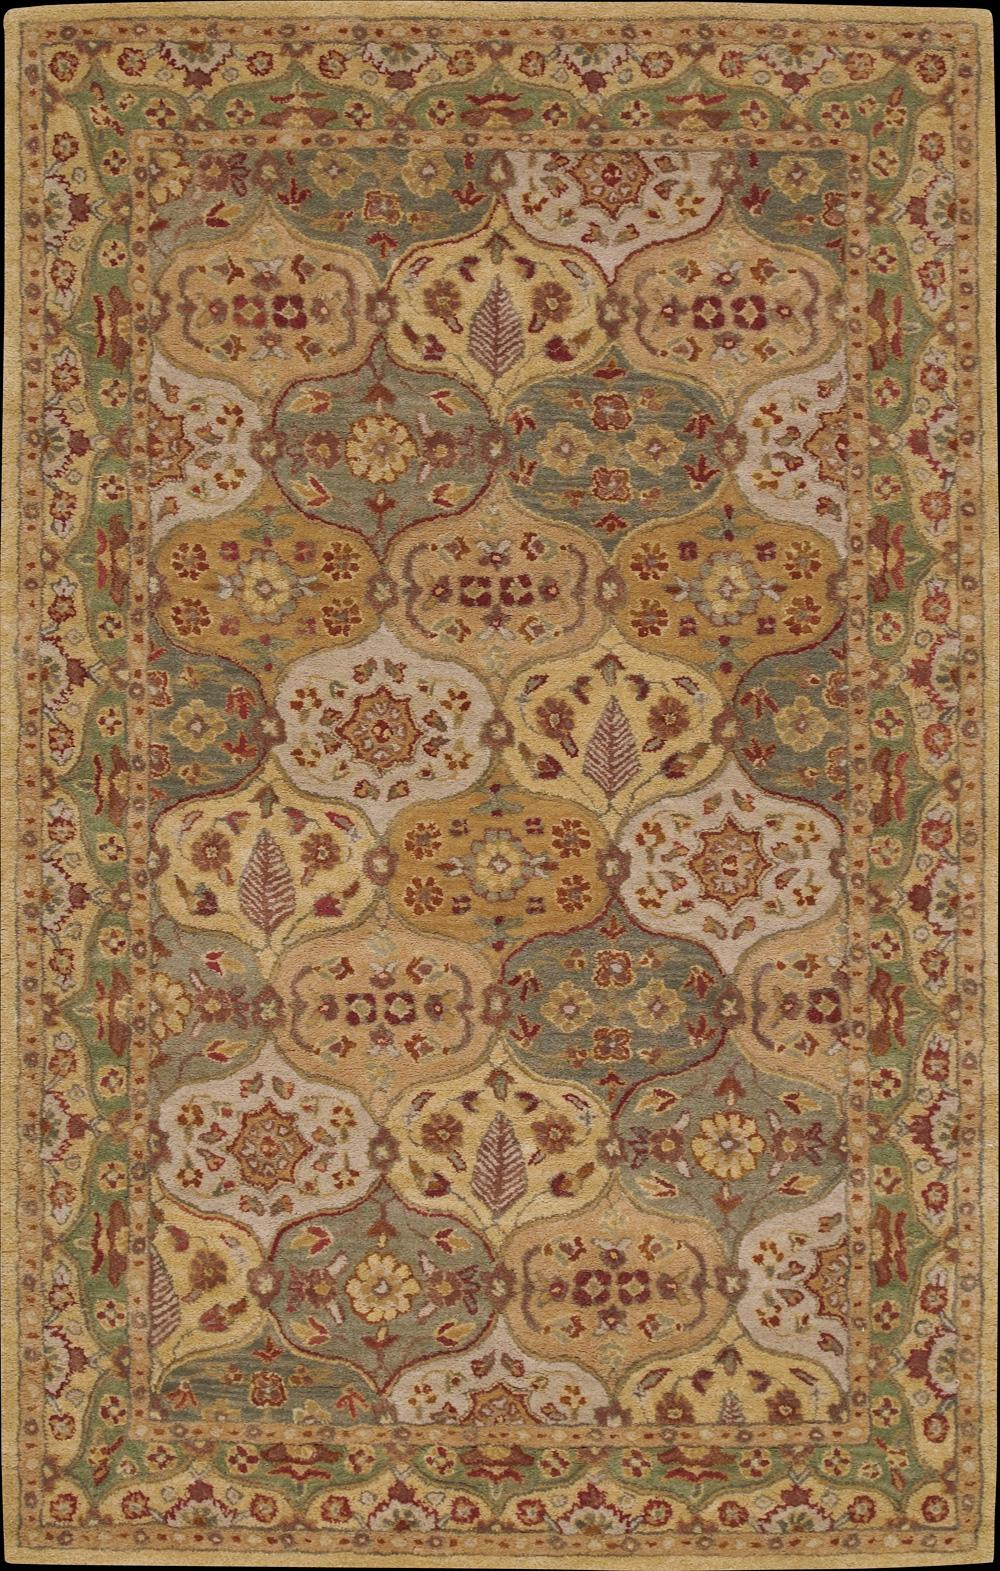 "Nourison India House Area Rug 8' x 10'6"" - Item Number: 4507"